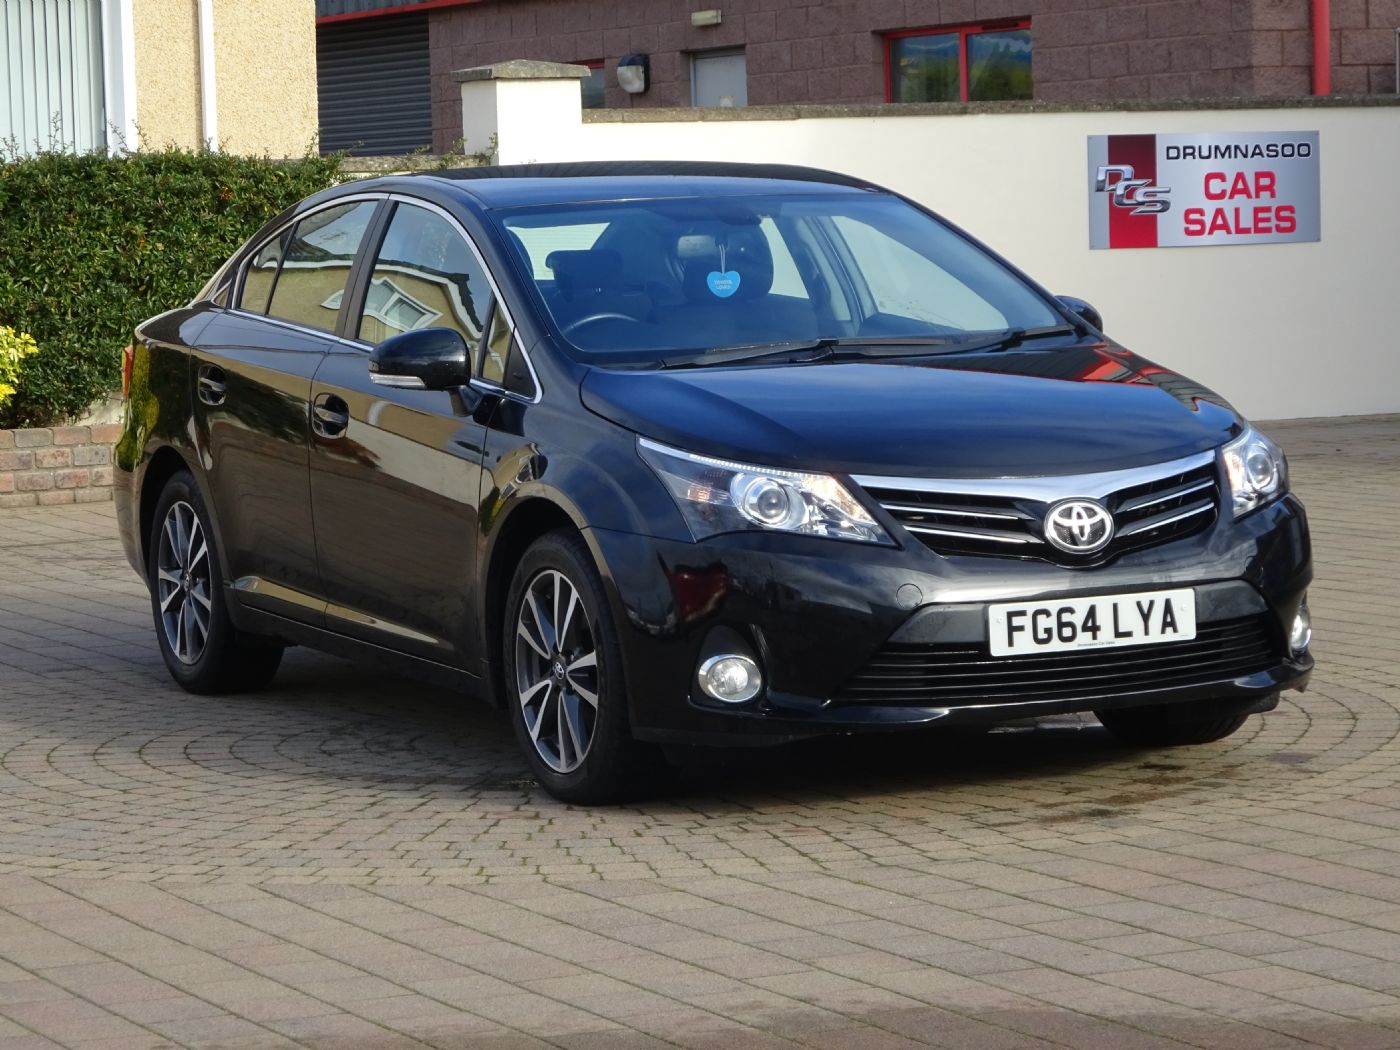 Toyota Avensis Icon 2.0  D-4D, Sat Nav, Rear Camera, £30 Road Tax